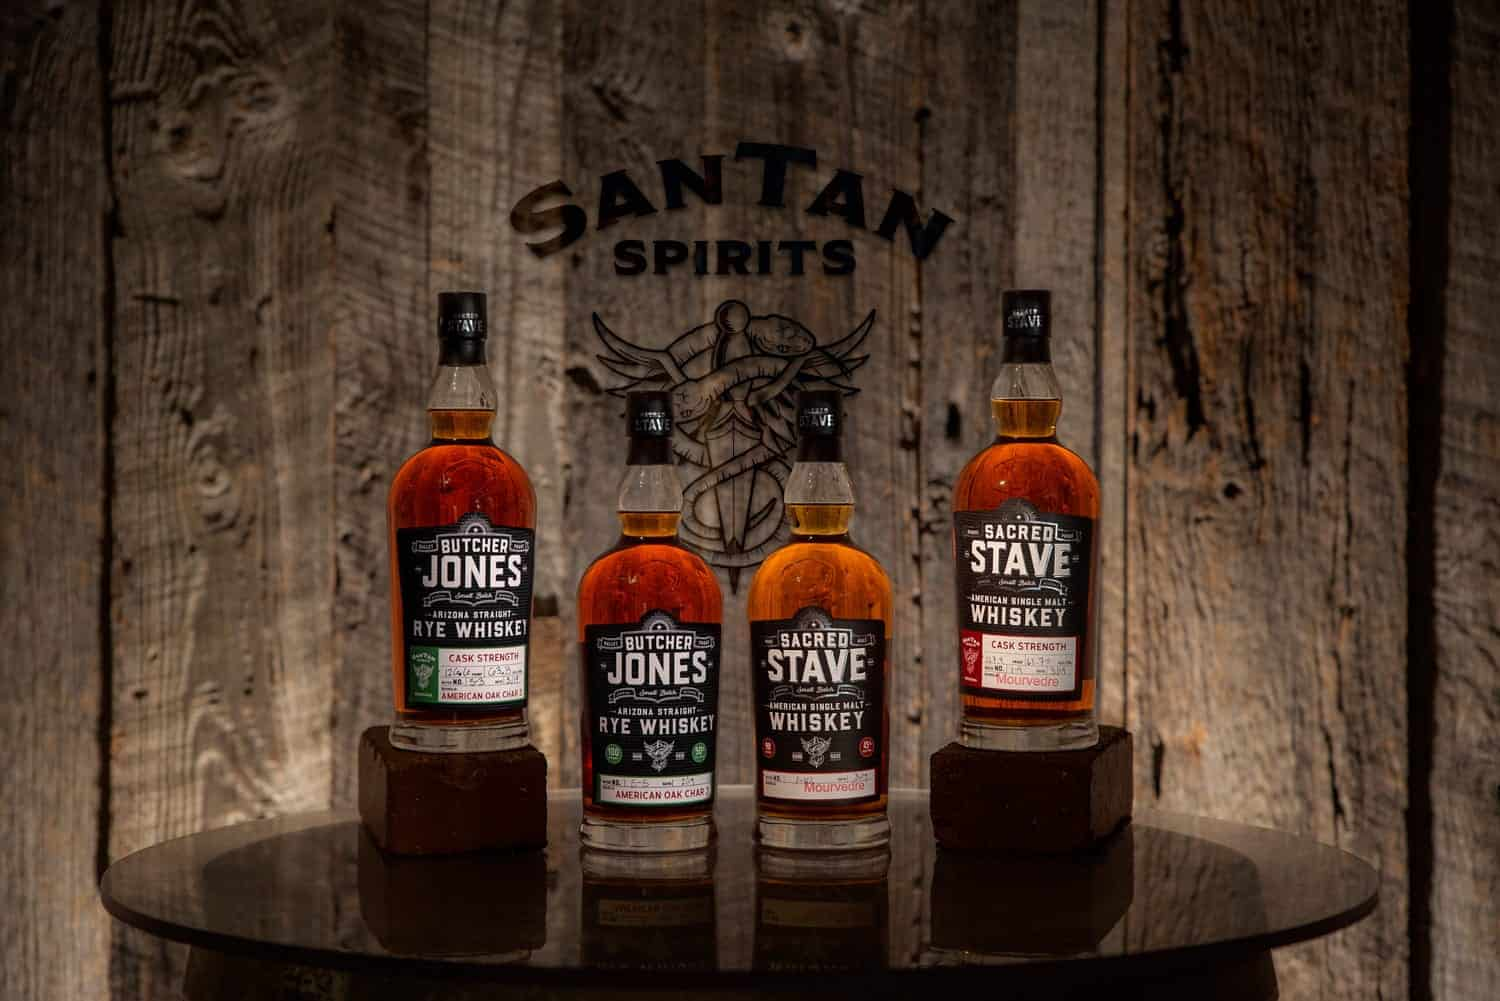 Arizona distillery SanTan Spirits Butcher Jones and Sacred Stave Whiskey, winners of the 2019 New York World Wine & Spirits Competition